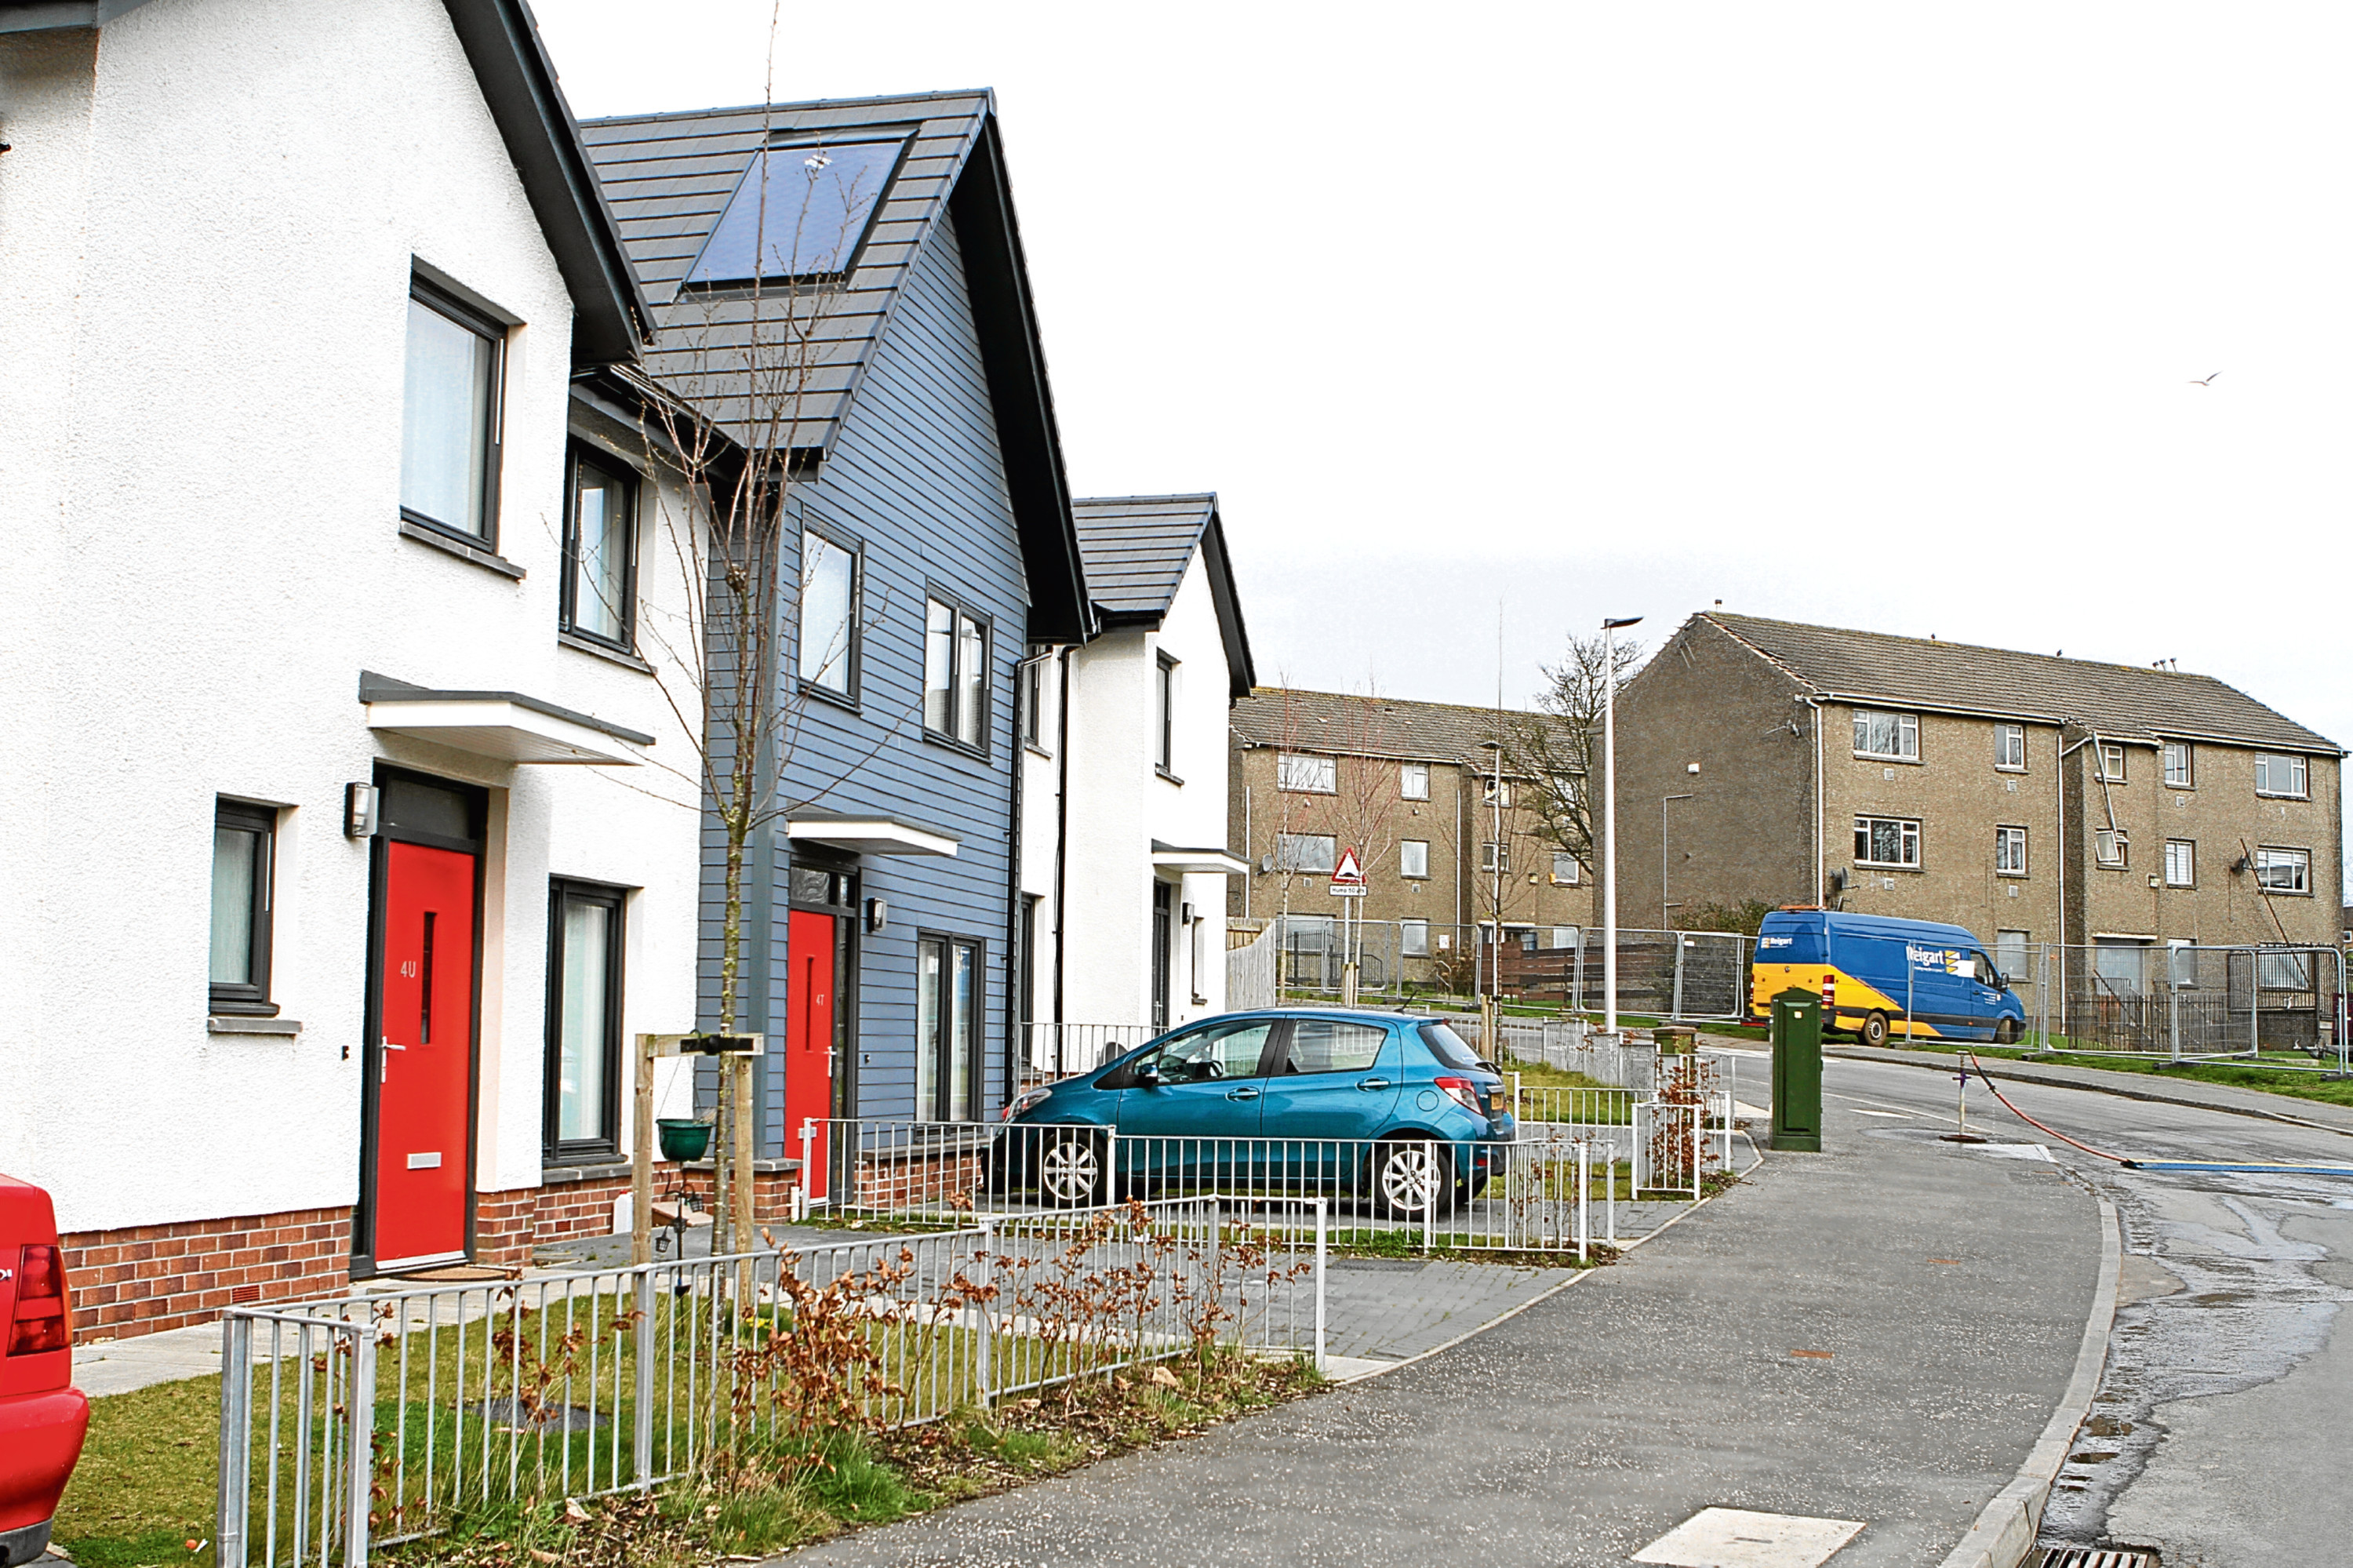 New-build houses with the flats due to be demolished in the background